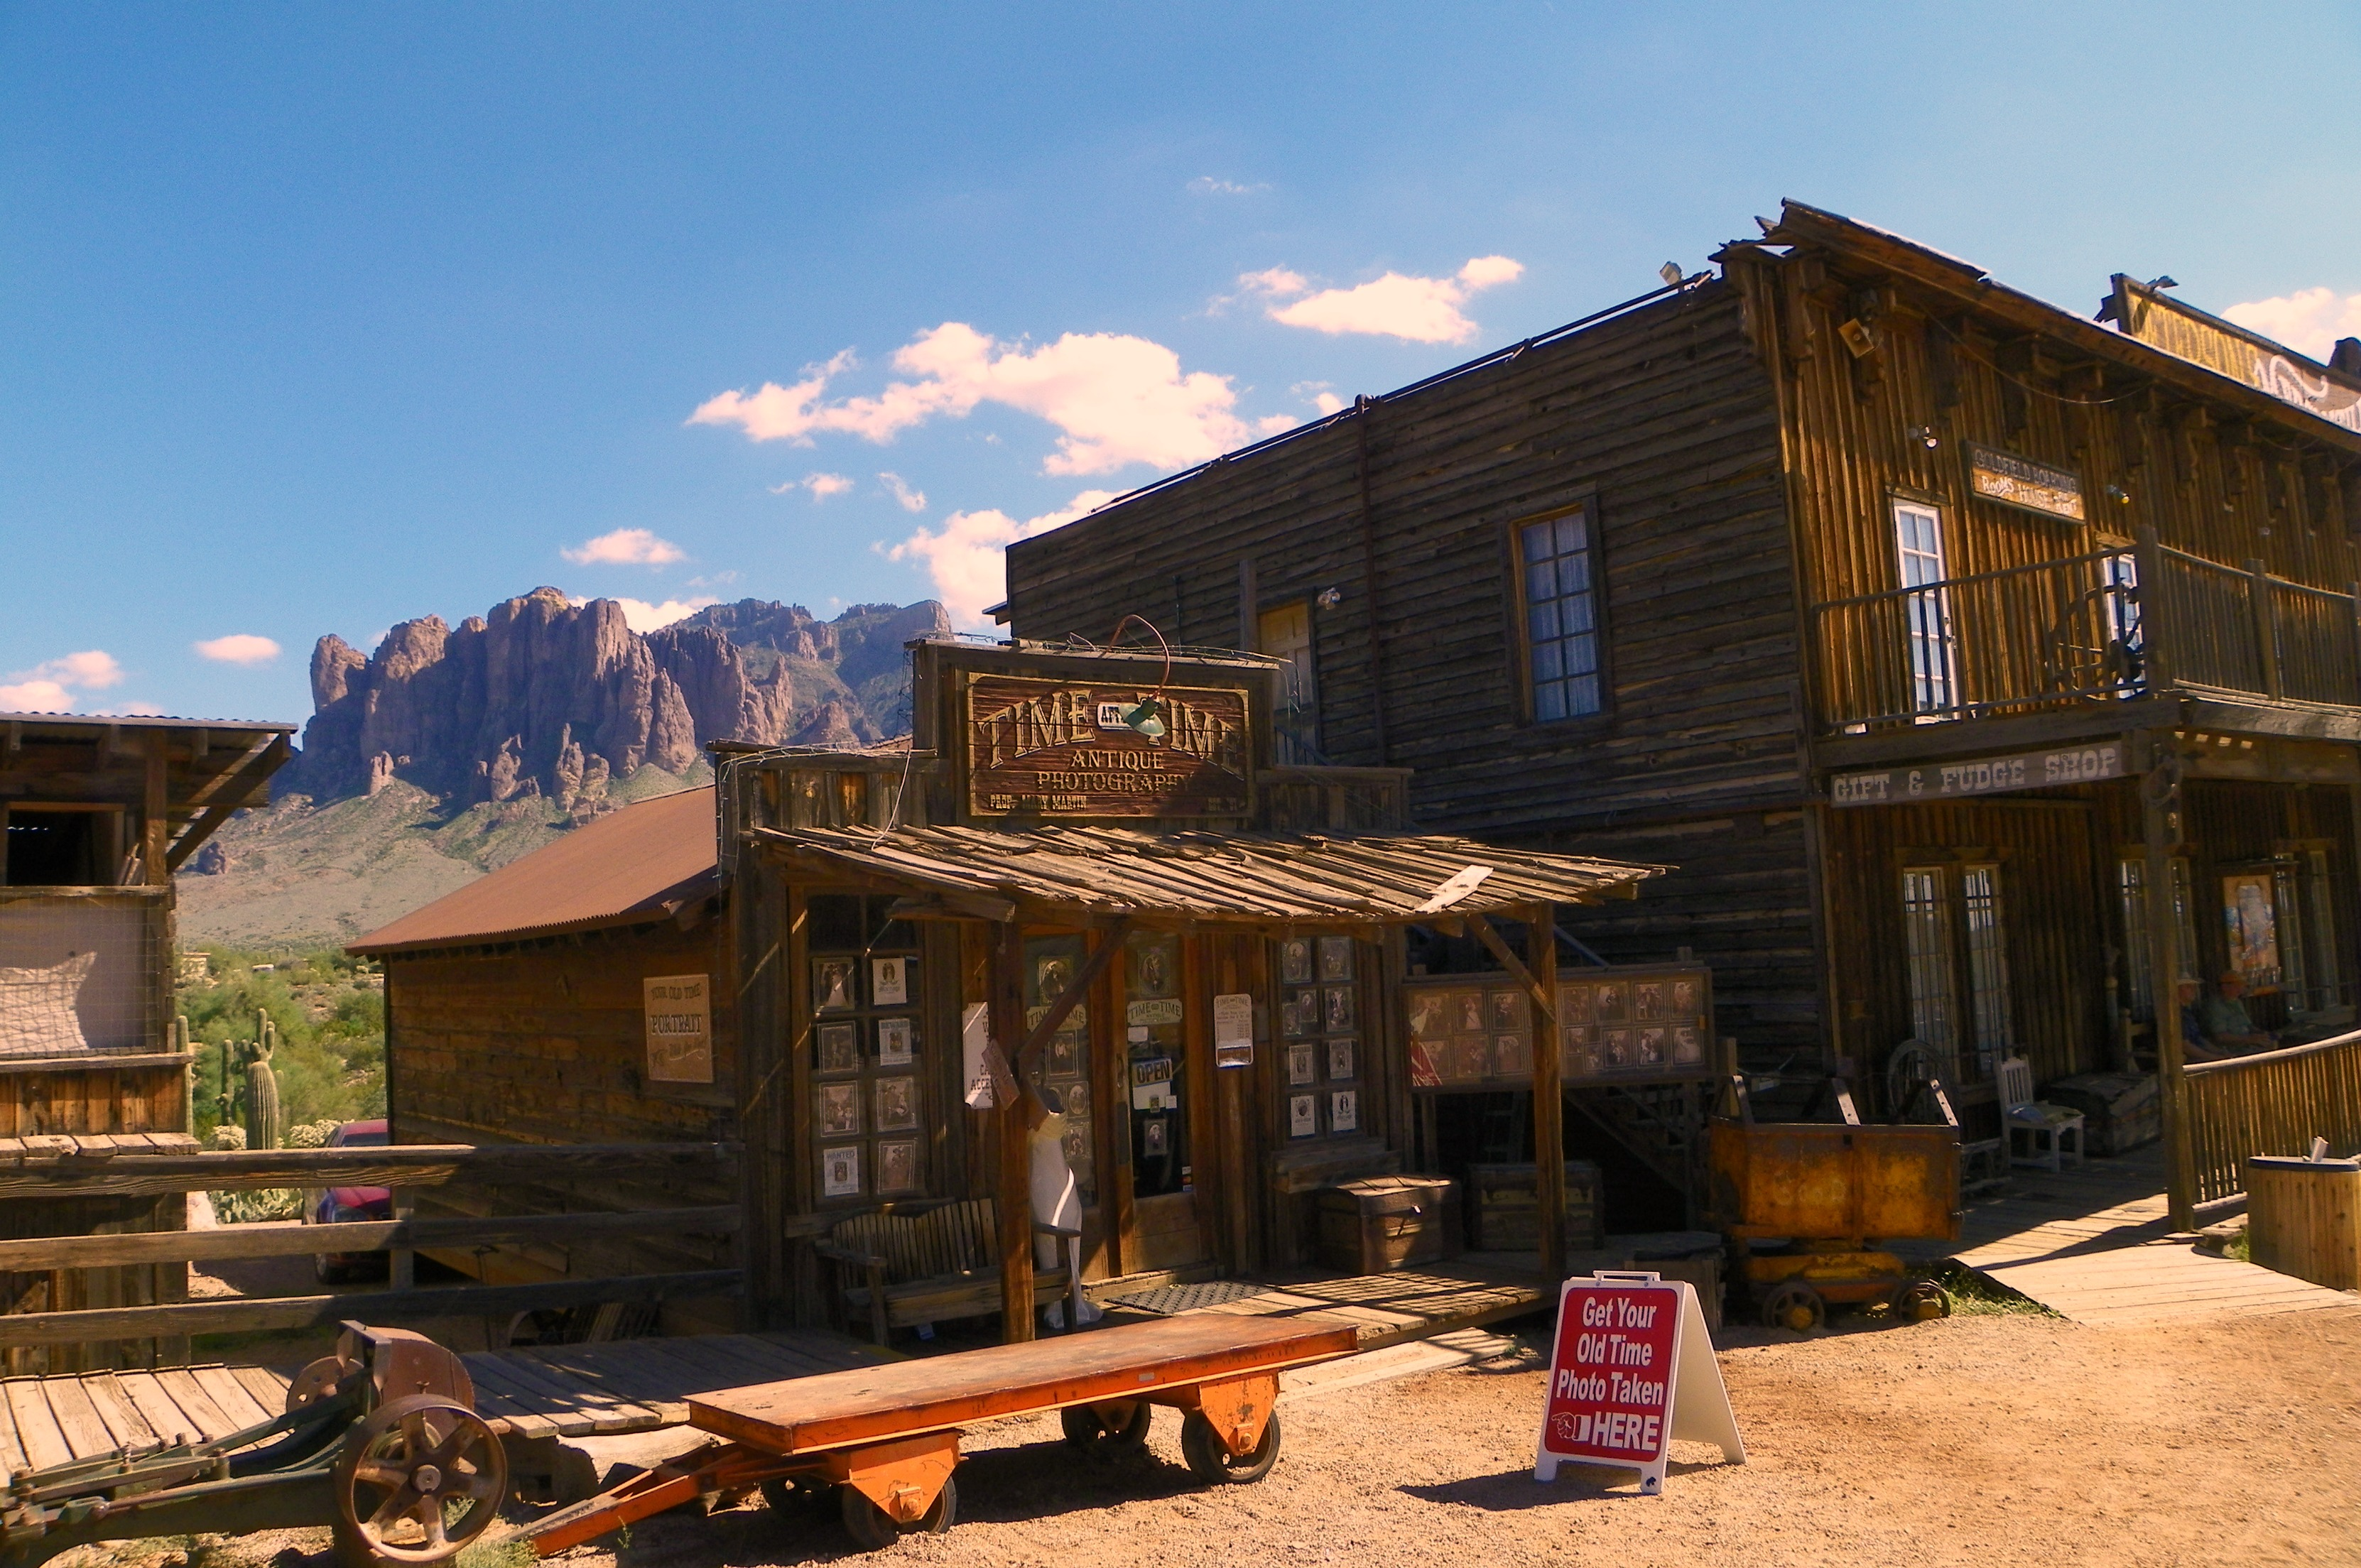 5 Family-Friendly Places To Experience the Old West in AZ